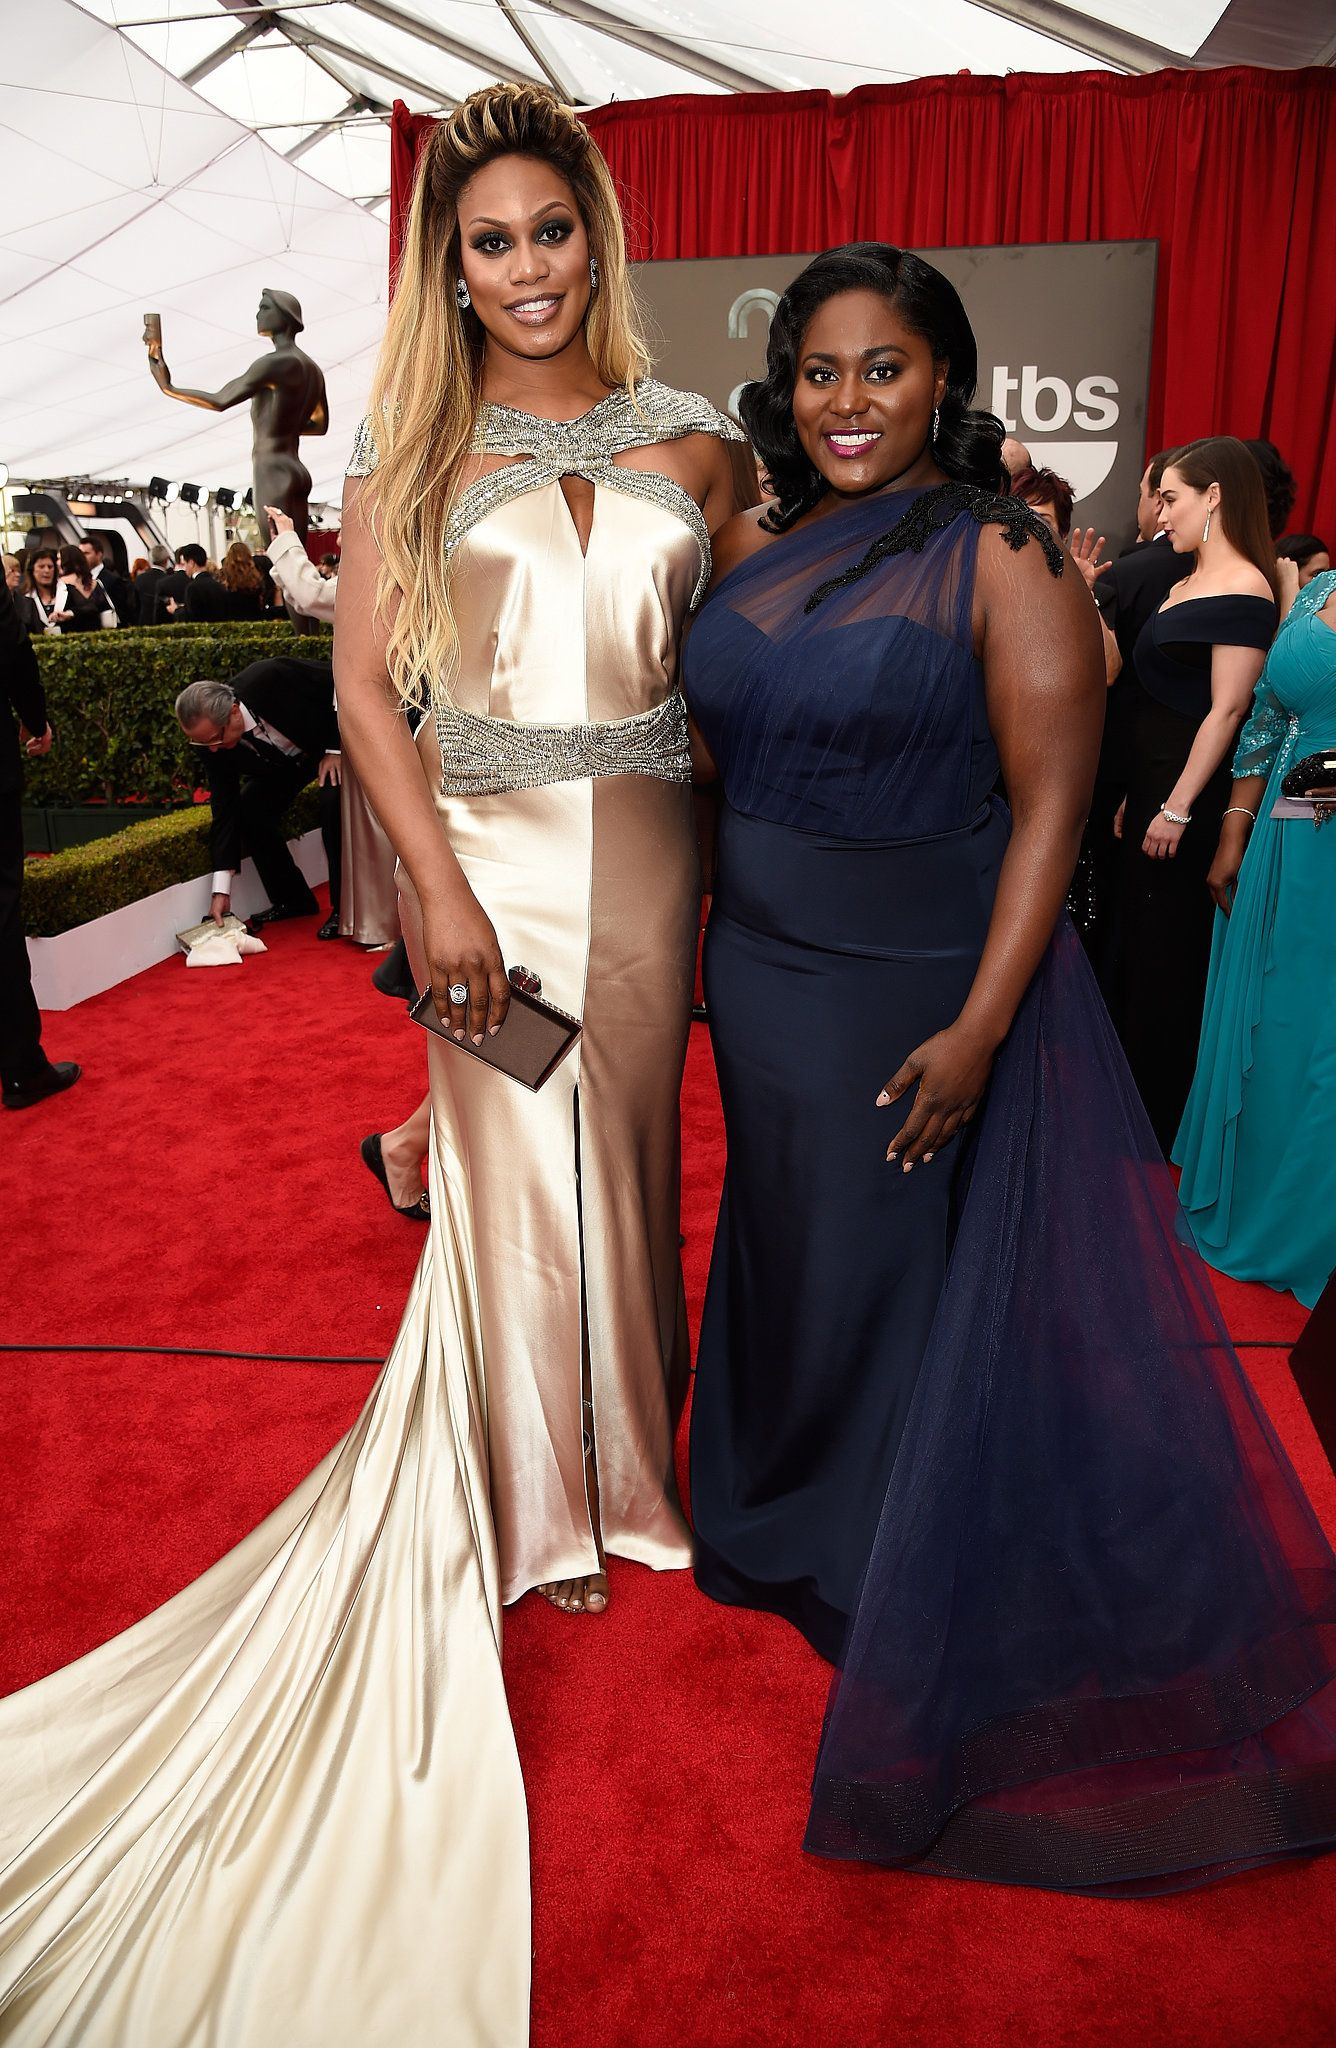 Laverne Cox and Danielle Brooks | Laverne cox, Danielle brooks and ...